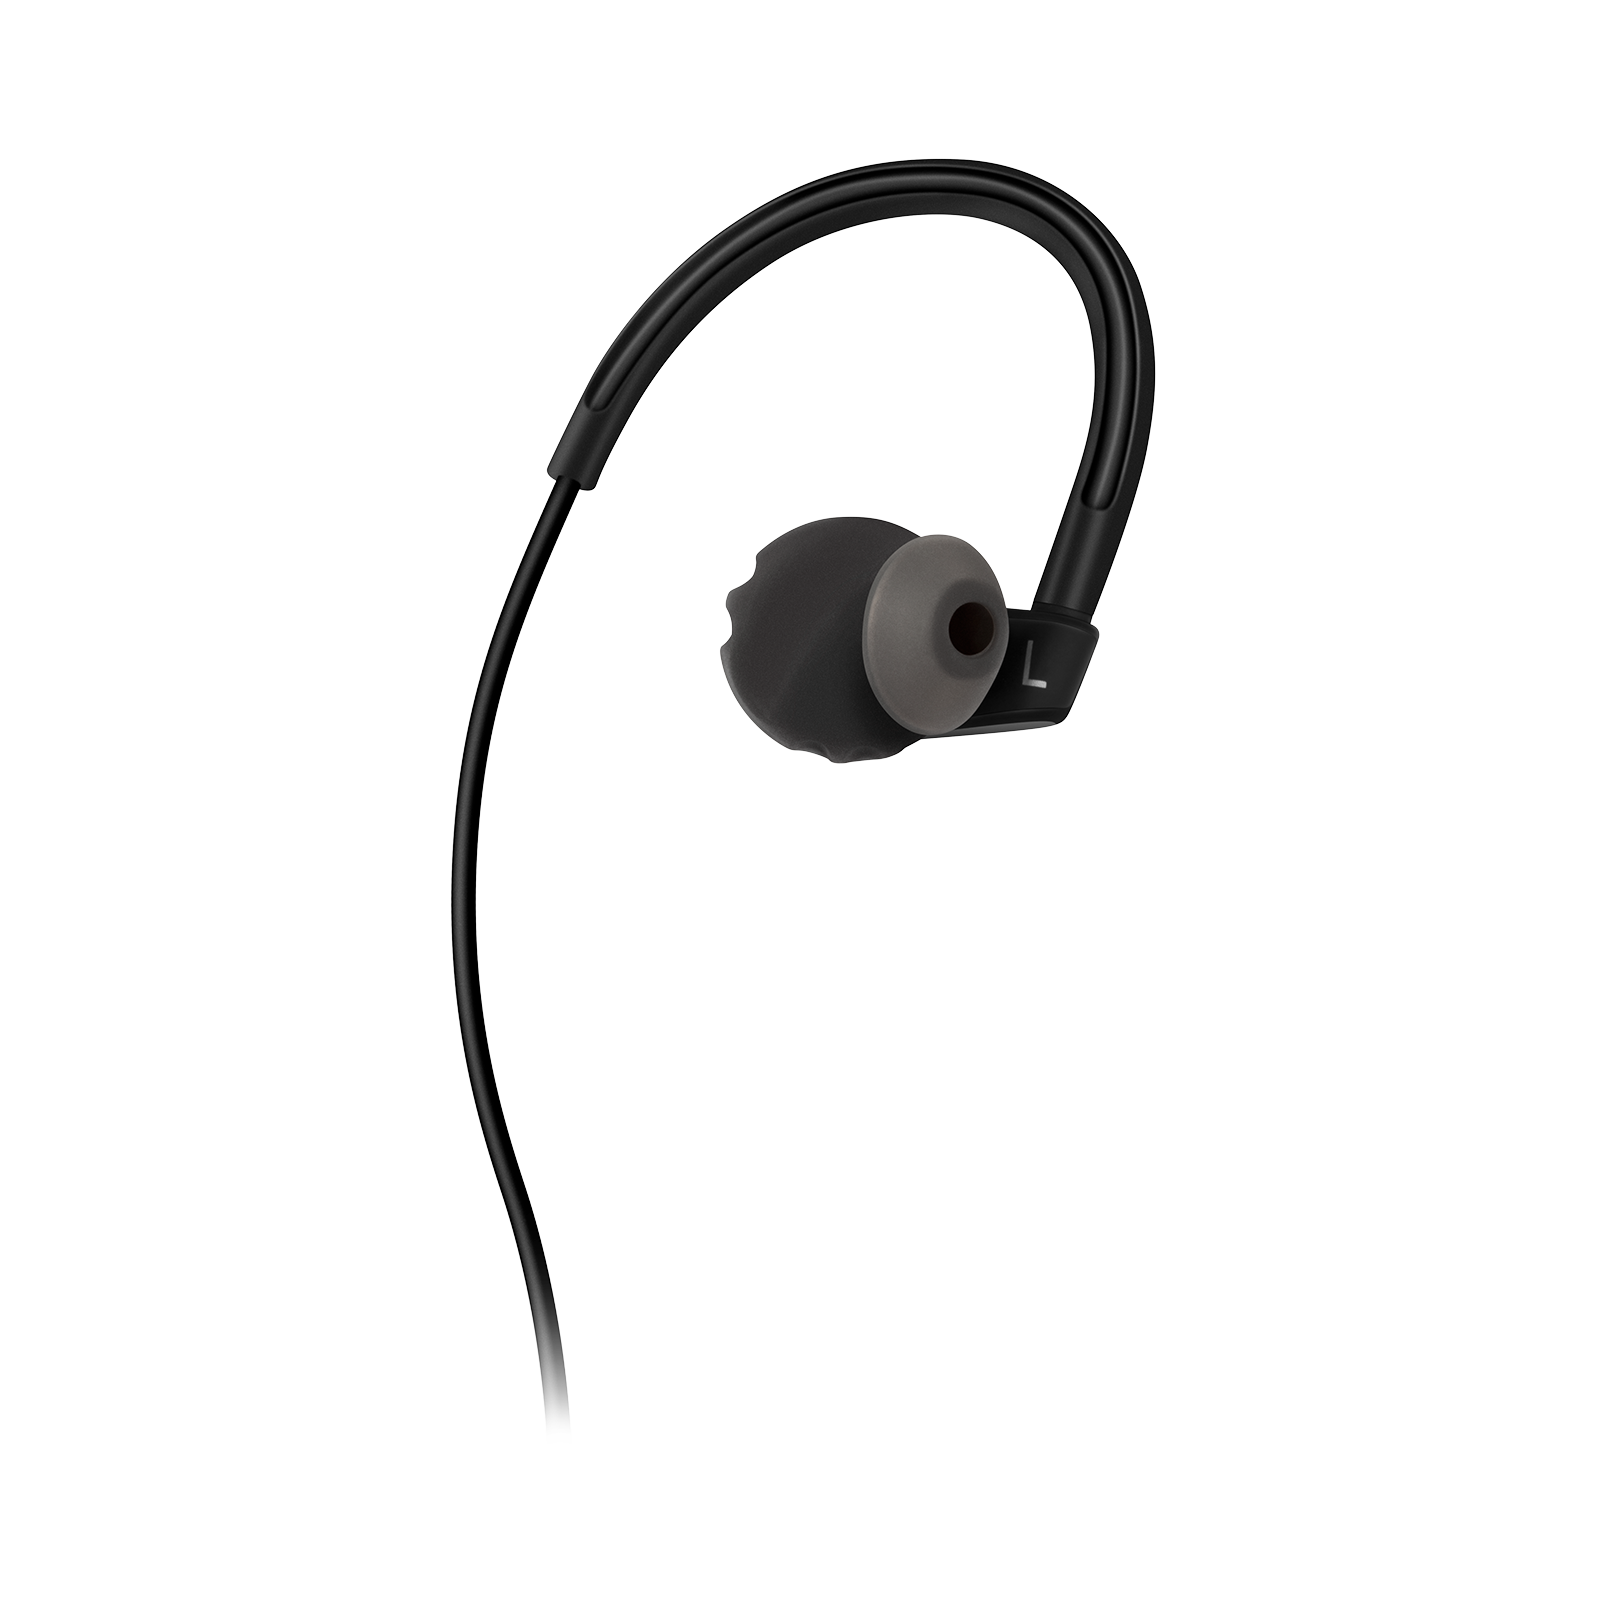 China:- - Black - Heart rate monitoring, wireless in-ear headphones for athletes - Back